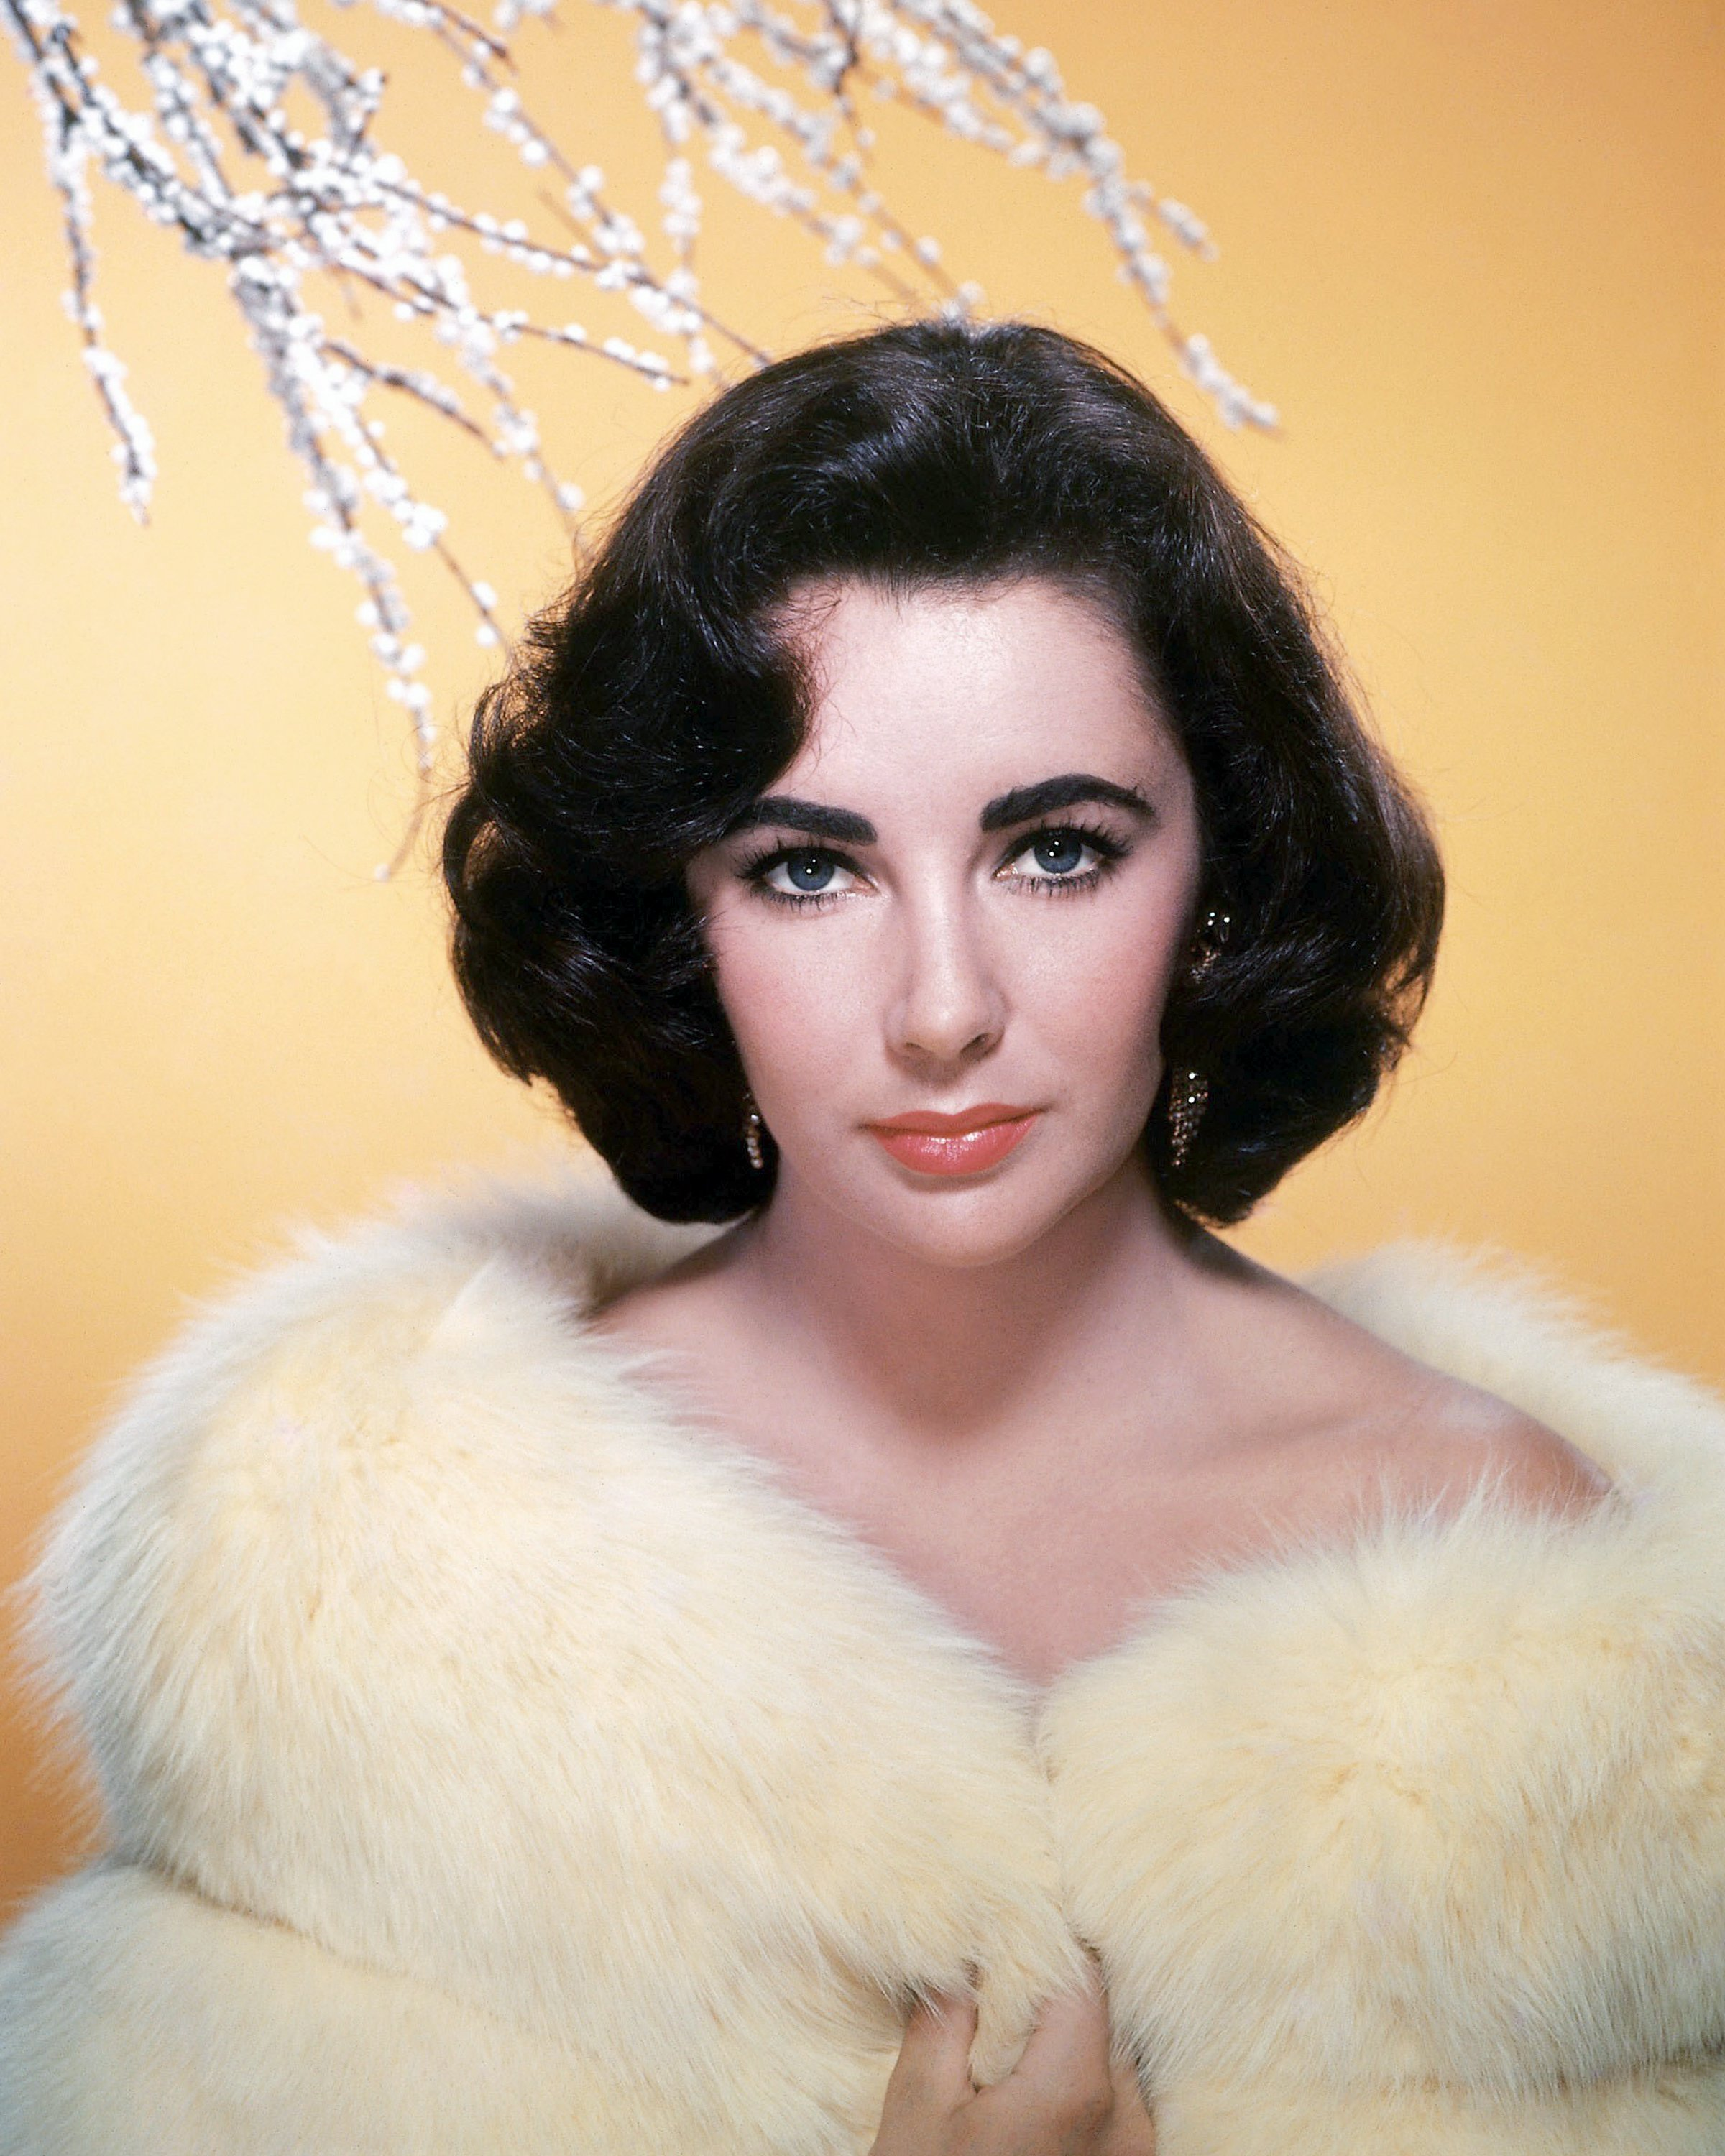 Elizabeth Taylor (1932 - 2011) in a white fur coat, circa 1955. | Photo by Silver Screen Collection/Getty Images